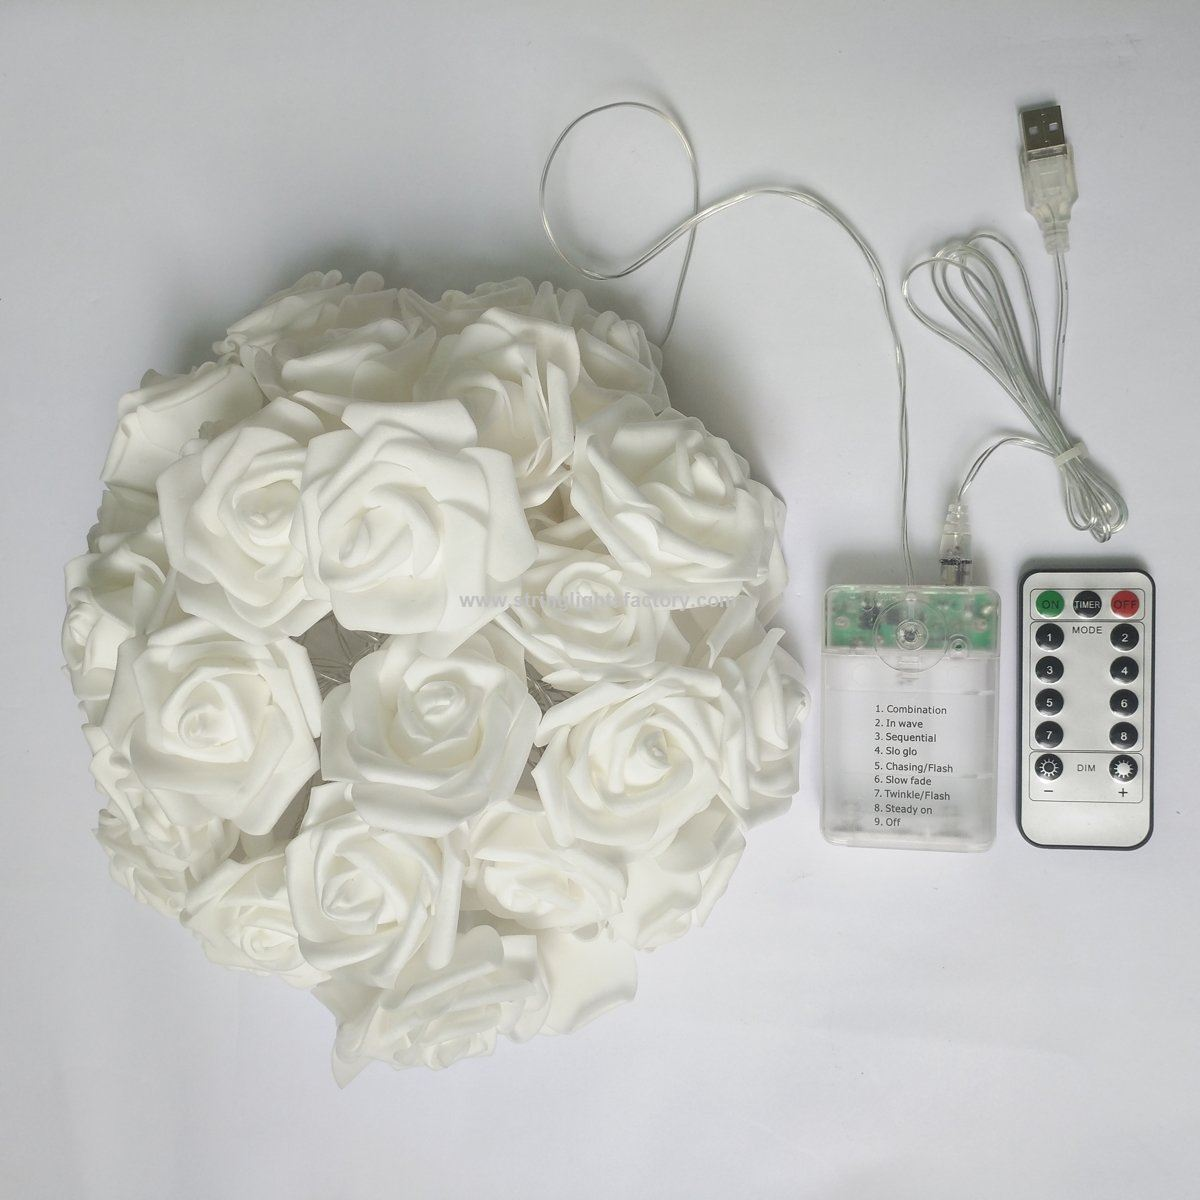 Promotional usb battery operated warm white 15 ft 30 led rose flower usb battery operated warm white 15 ft 30 led rose flower string lights mightylinksfo